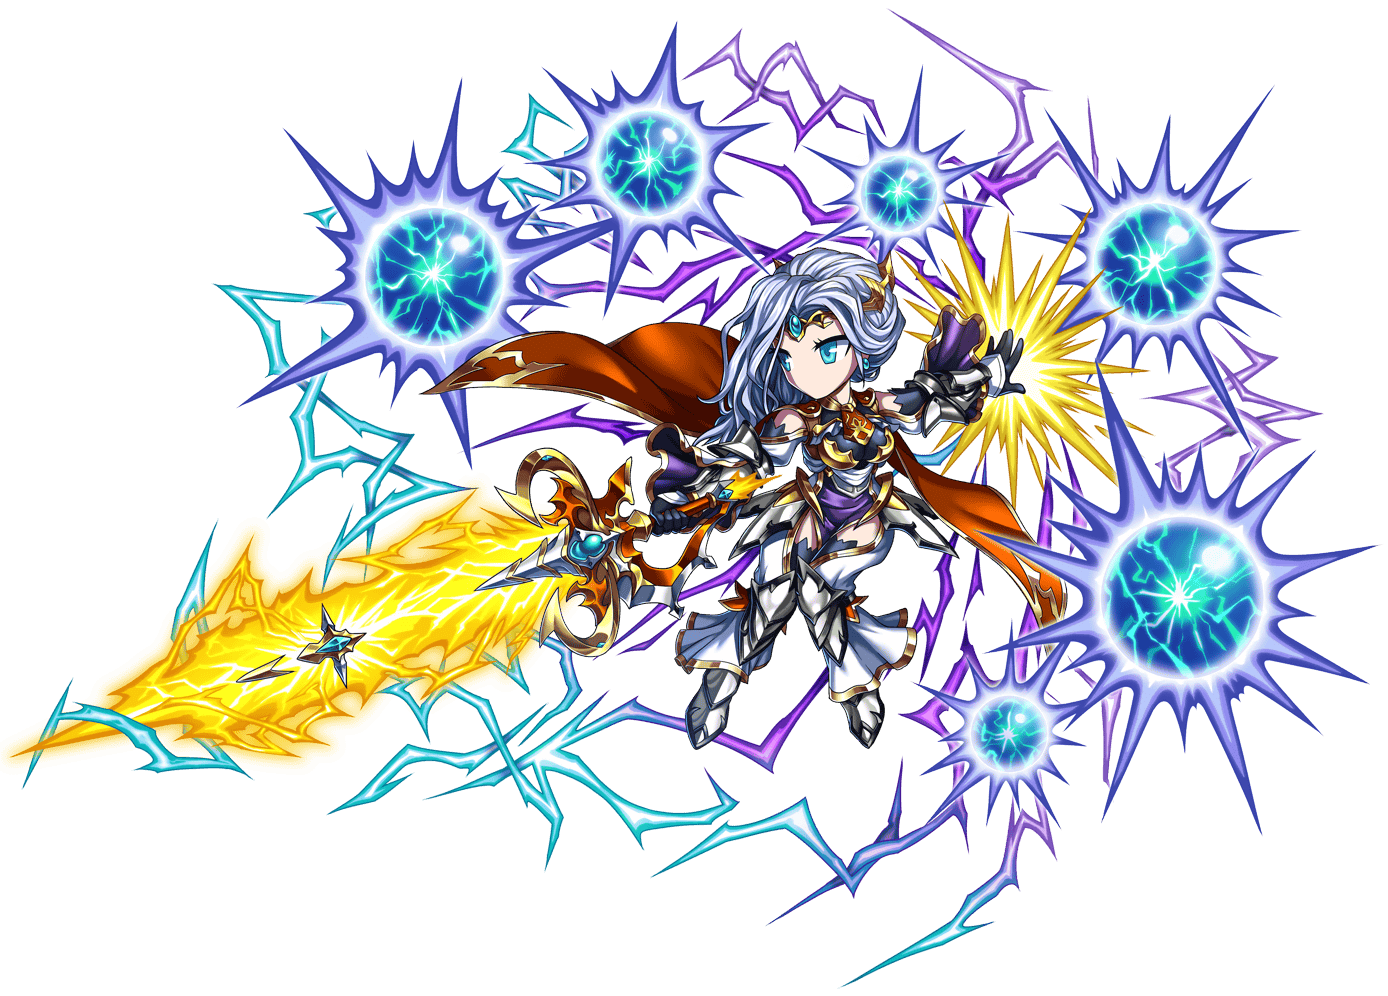 furious thunder cleria brave frontier wiki fandom powered by wikia